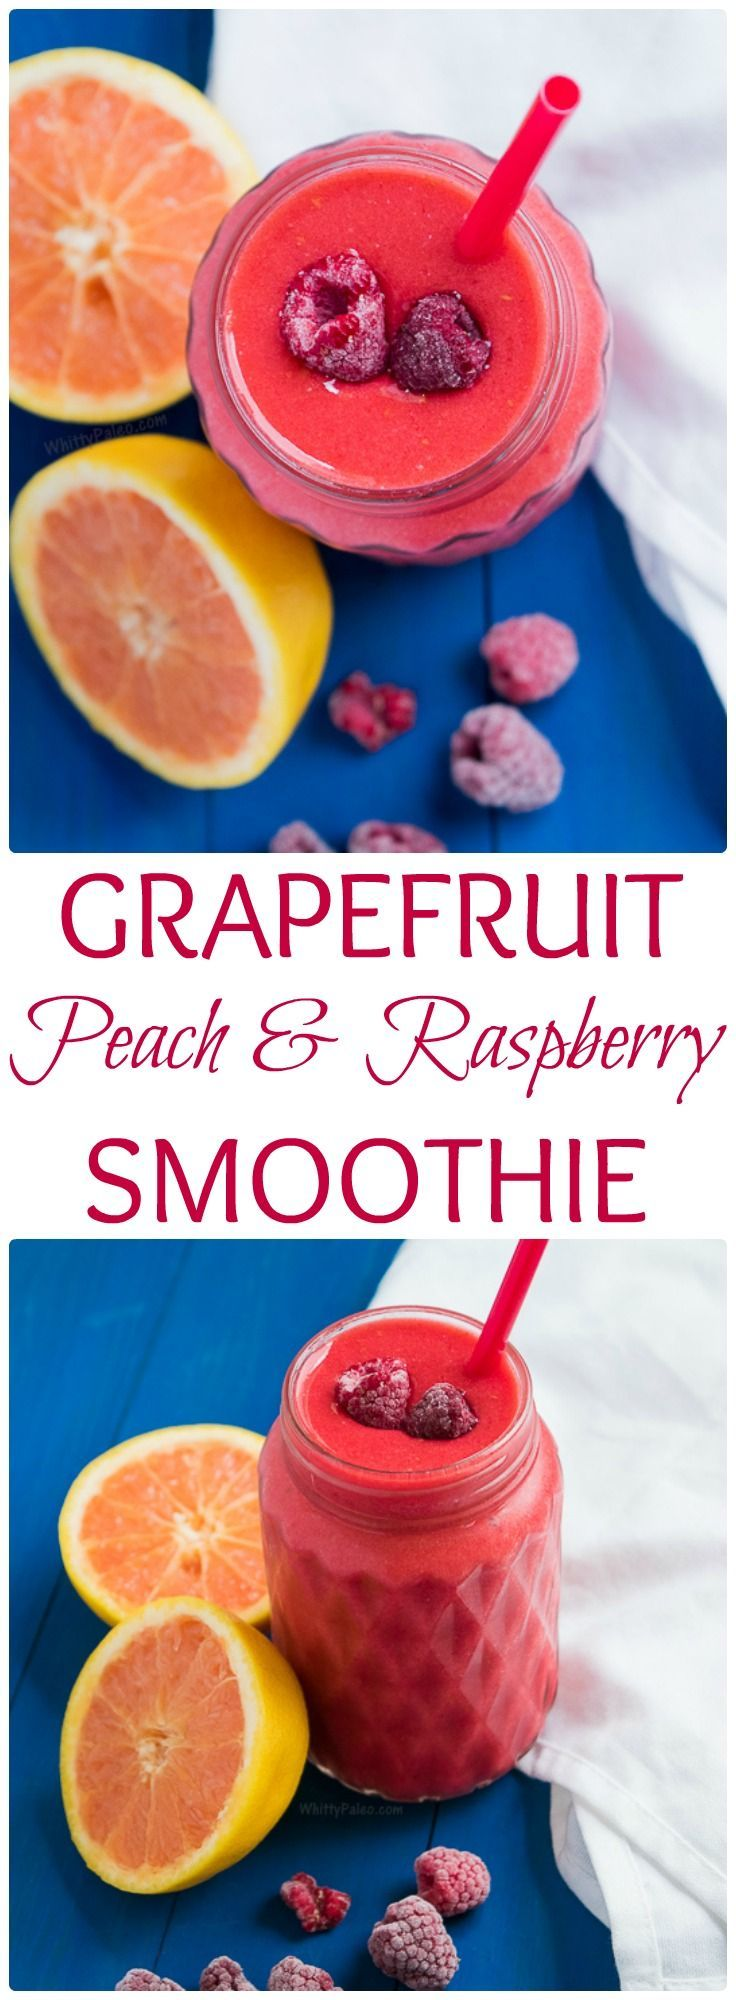 Healthy Paleo Dairy Free and Vegan Summer Grapefruit Peach Raspberry Smoothie - refresh yourself this summer with this sweet and cooling drink!  Absolutely no sugar added! From WhittyPaleo.com